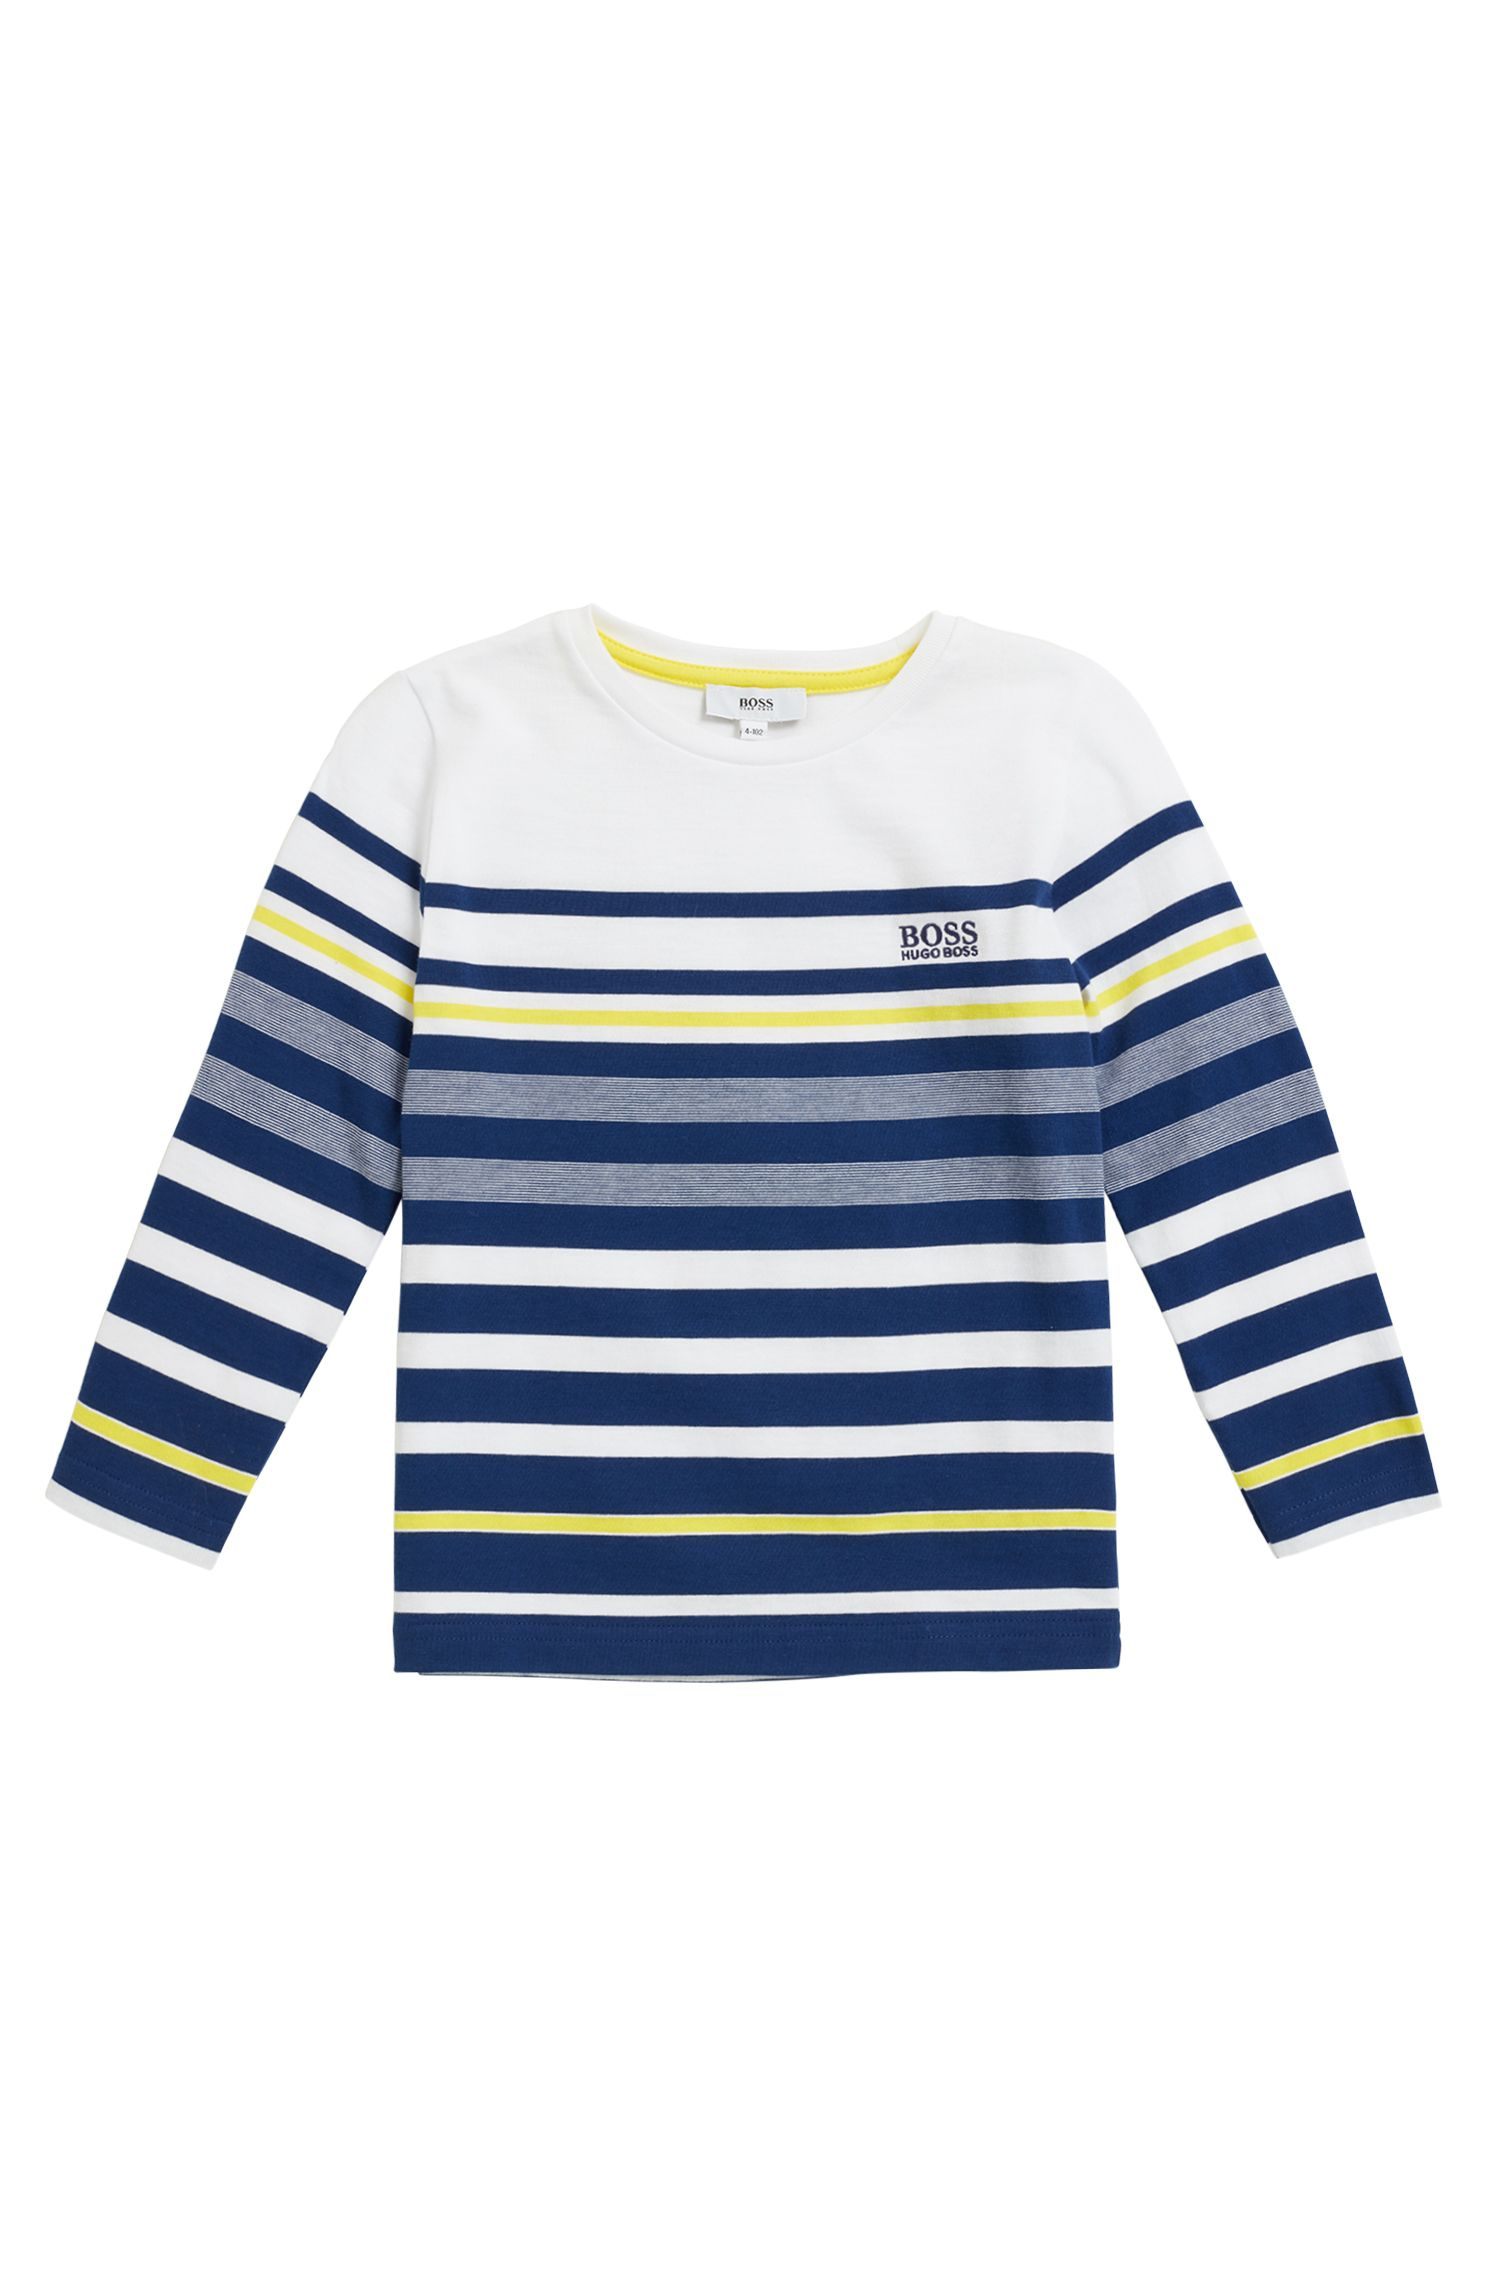 Kids' long-sleeved striped T-shirt in cotton jersey